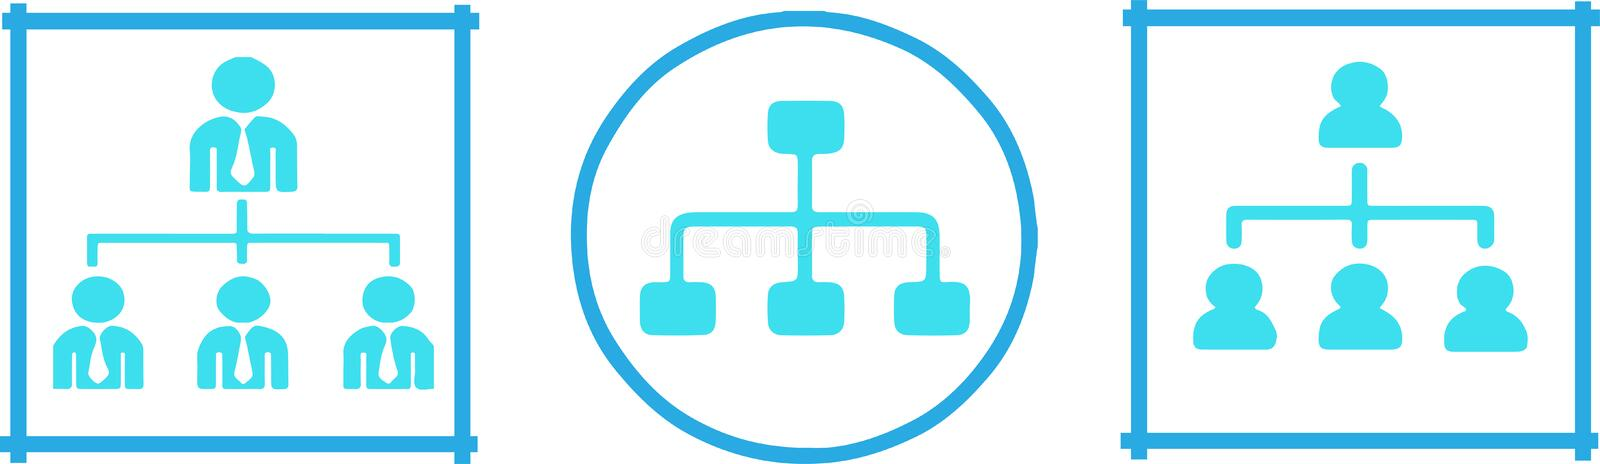 Organizational structure icon on white background vector illustration